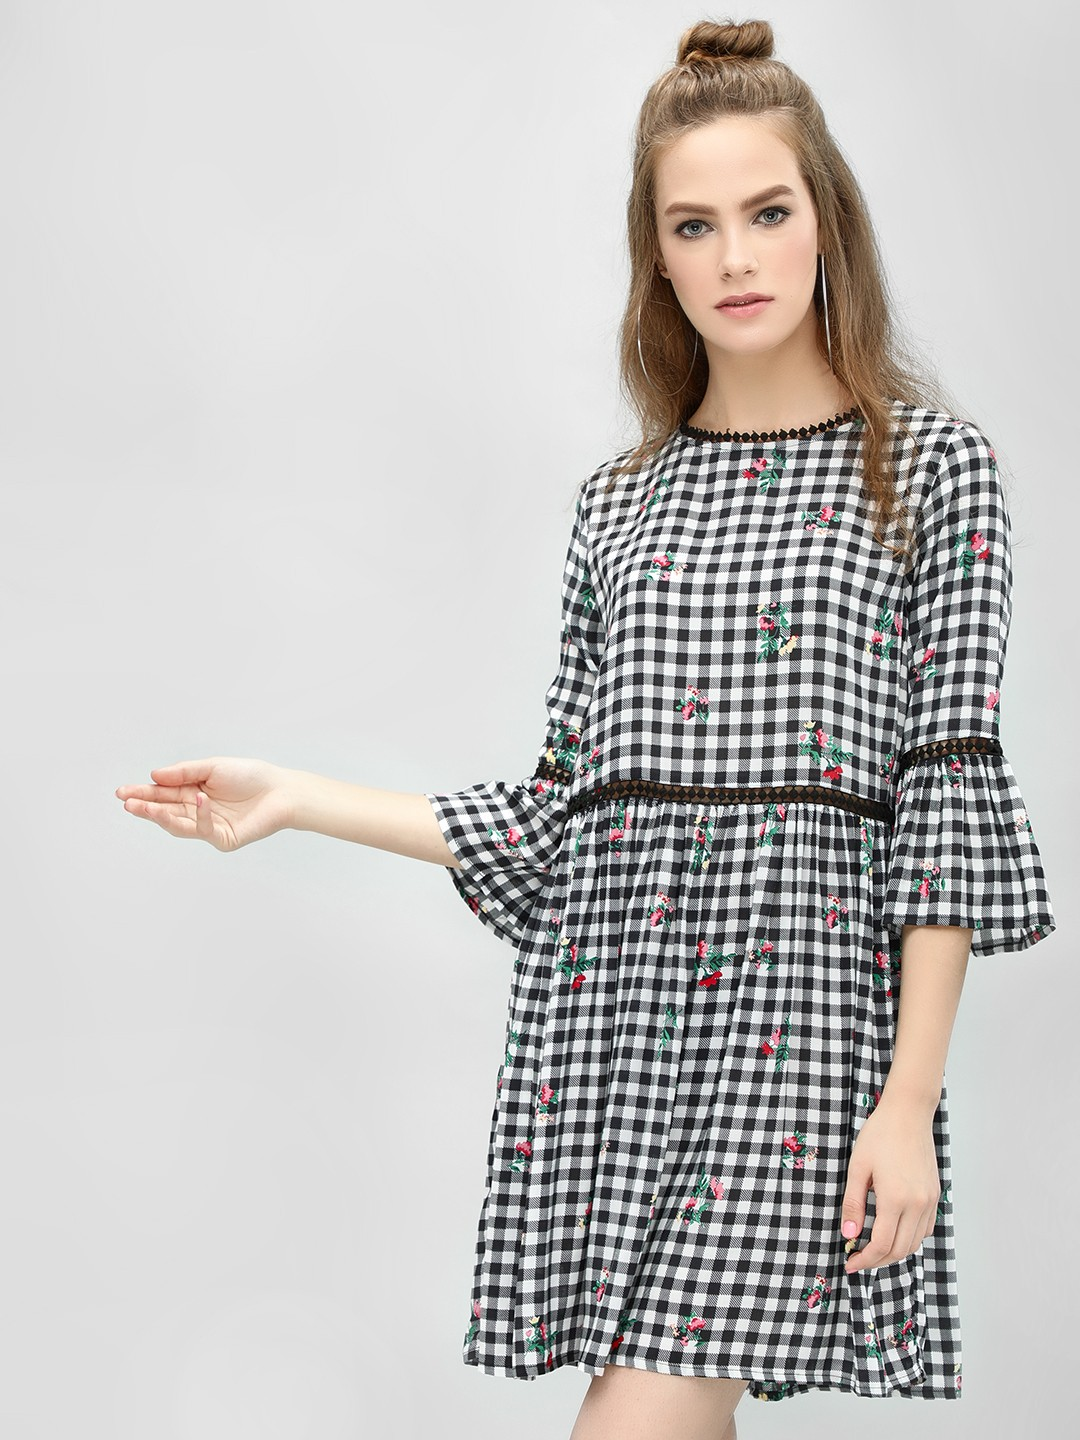 KOOVS Black/White Checkered Floral Print Dress 1